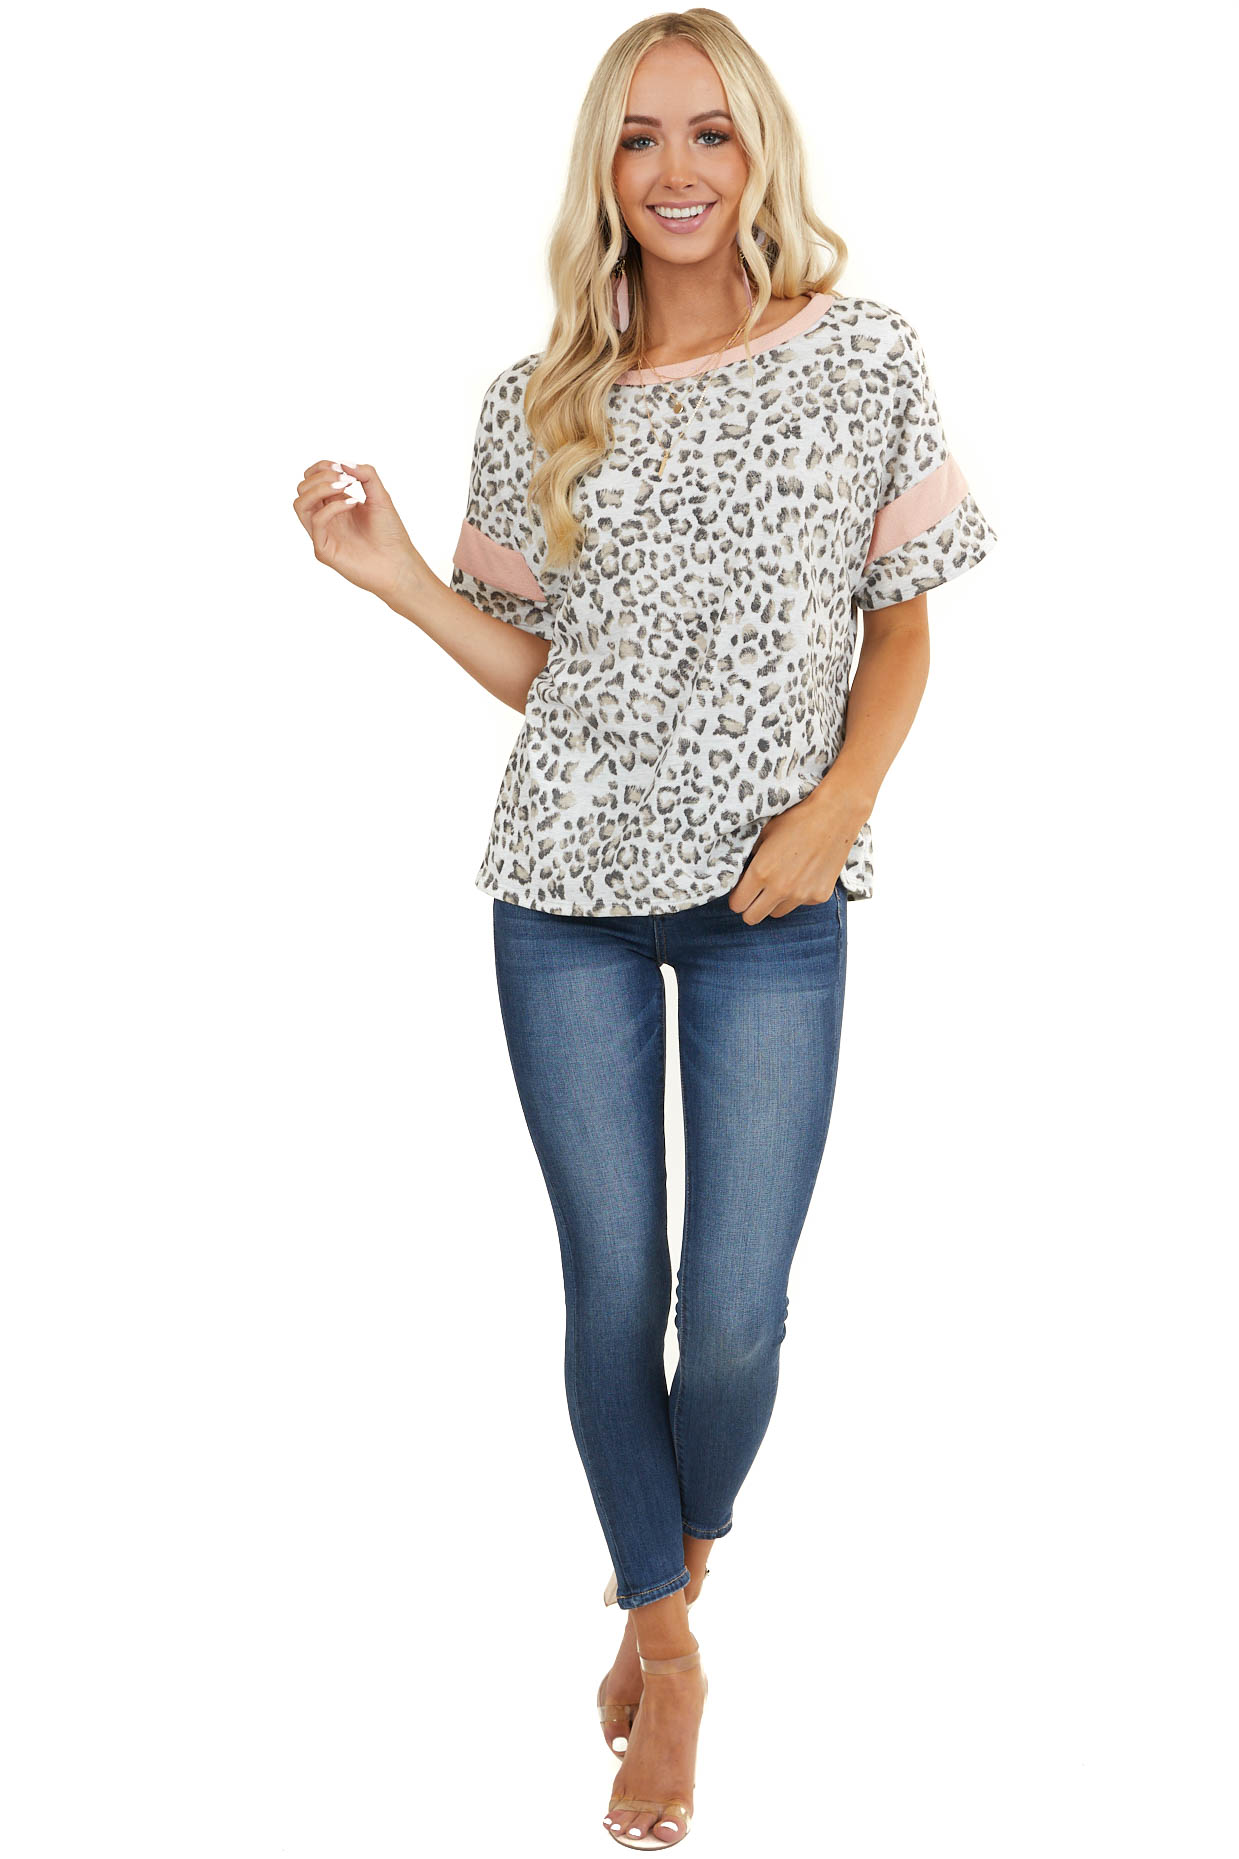 Heather Grey Leopard Print Top with Blush Contrast Details